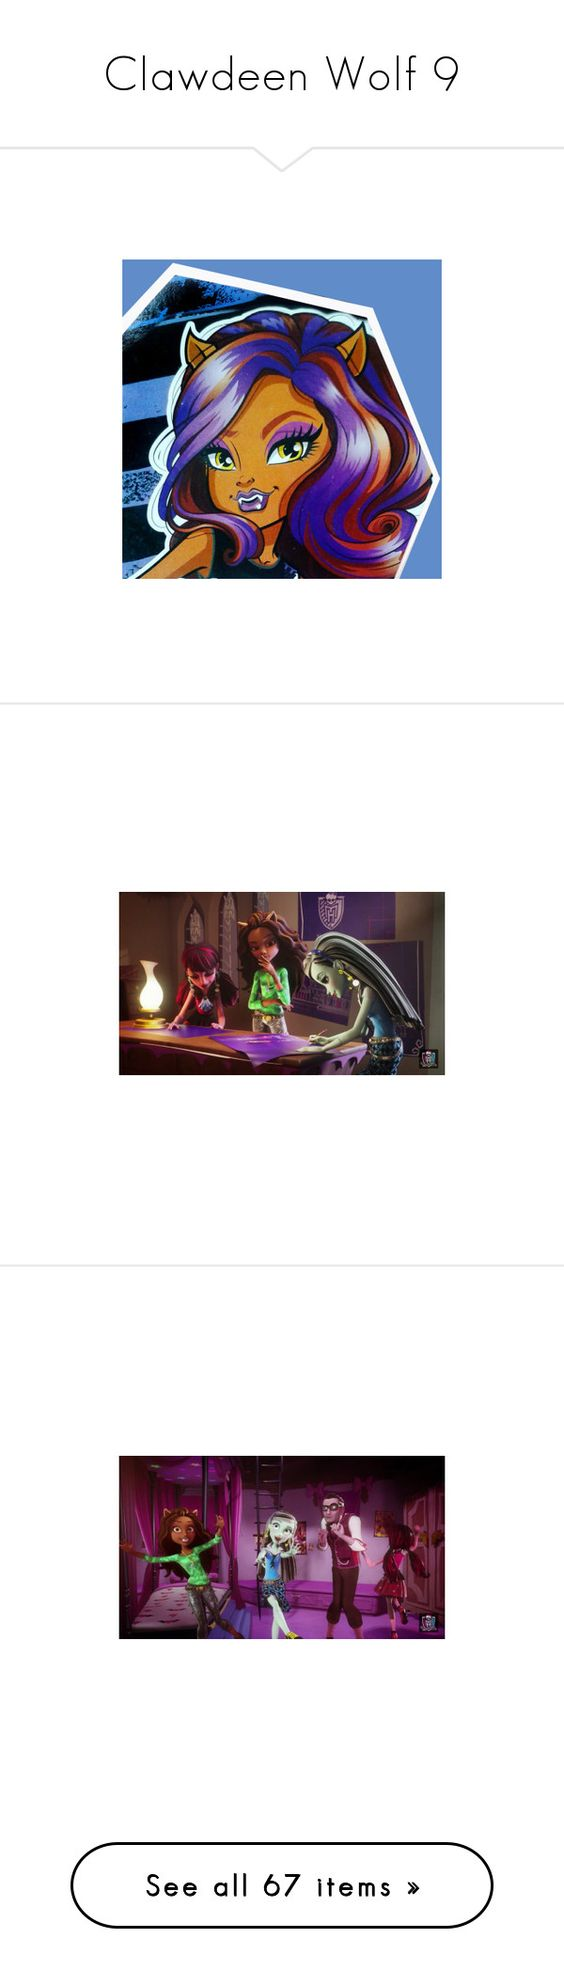 """""""Clawdeen Wolf 9"""" by bluetidegirl ❤ liked on Polyvore featuring dresses, gowns, purple gown, purple ball gowns, purple evening dresses, purple dress, purple evening gowns, cocktail prom dress, ombre chiffon dress and sexy cocktail dresses"""